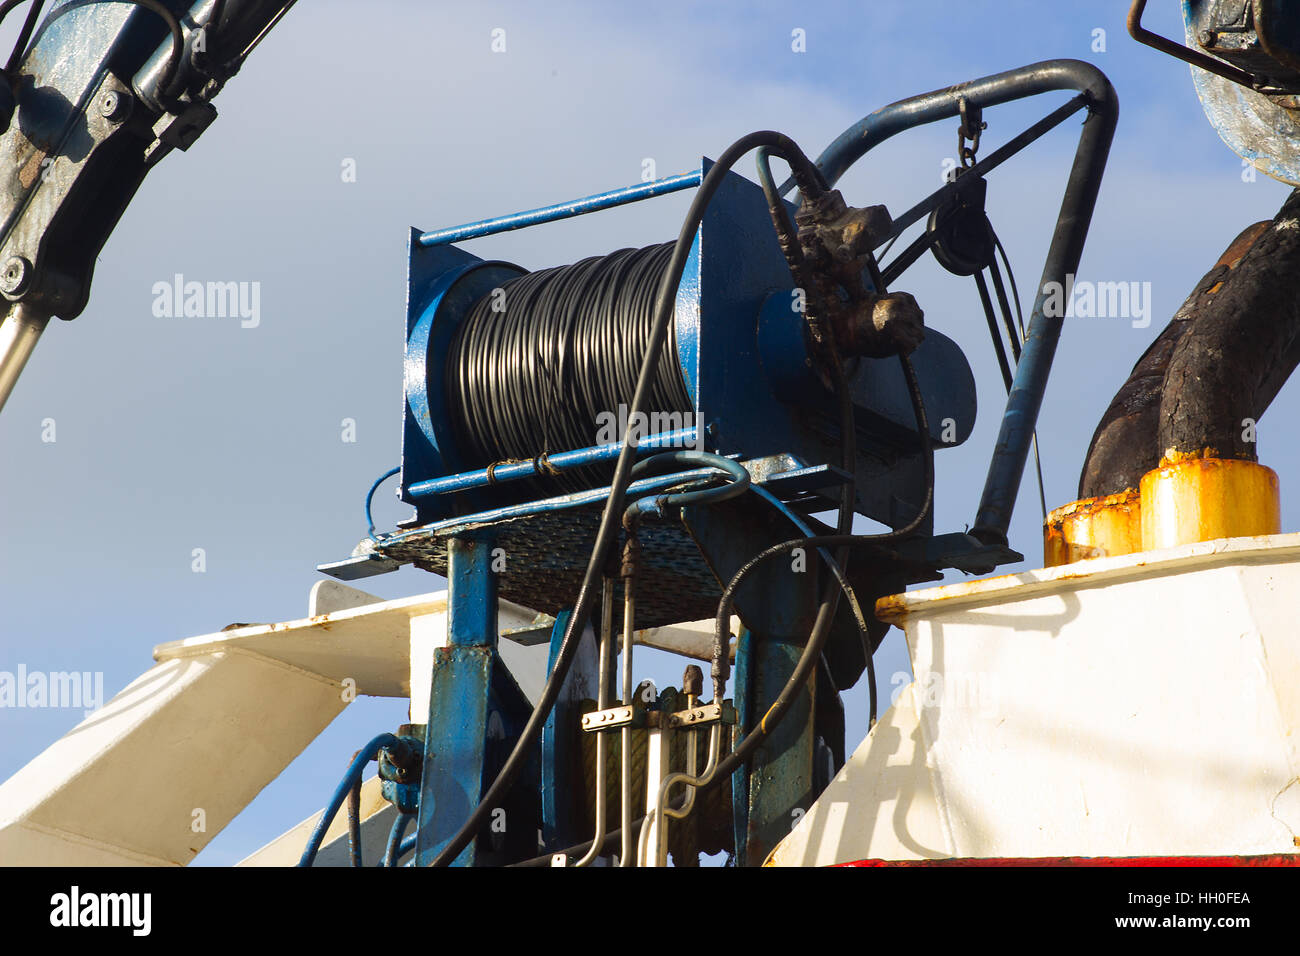 Power Winch Stock Photos Amp Power Winch Stock Images Alamy